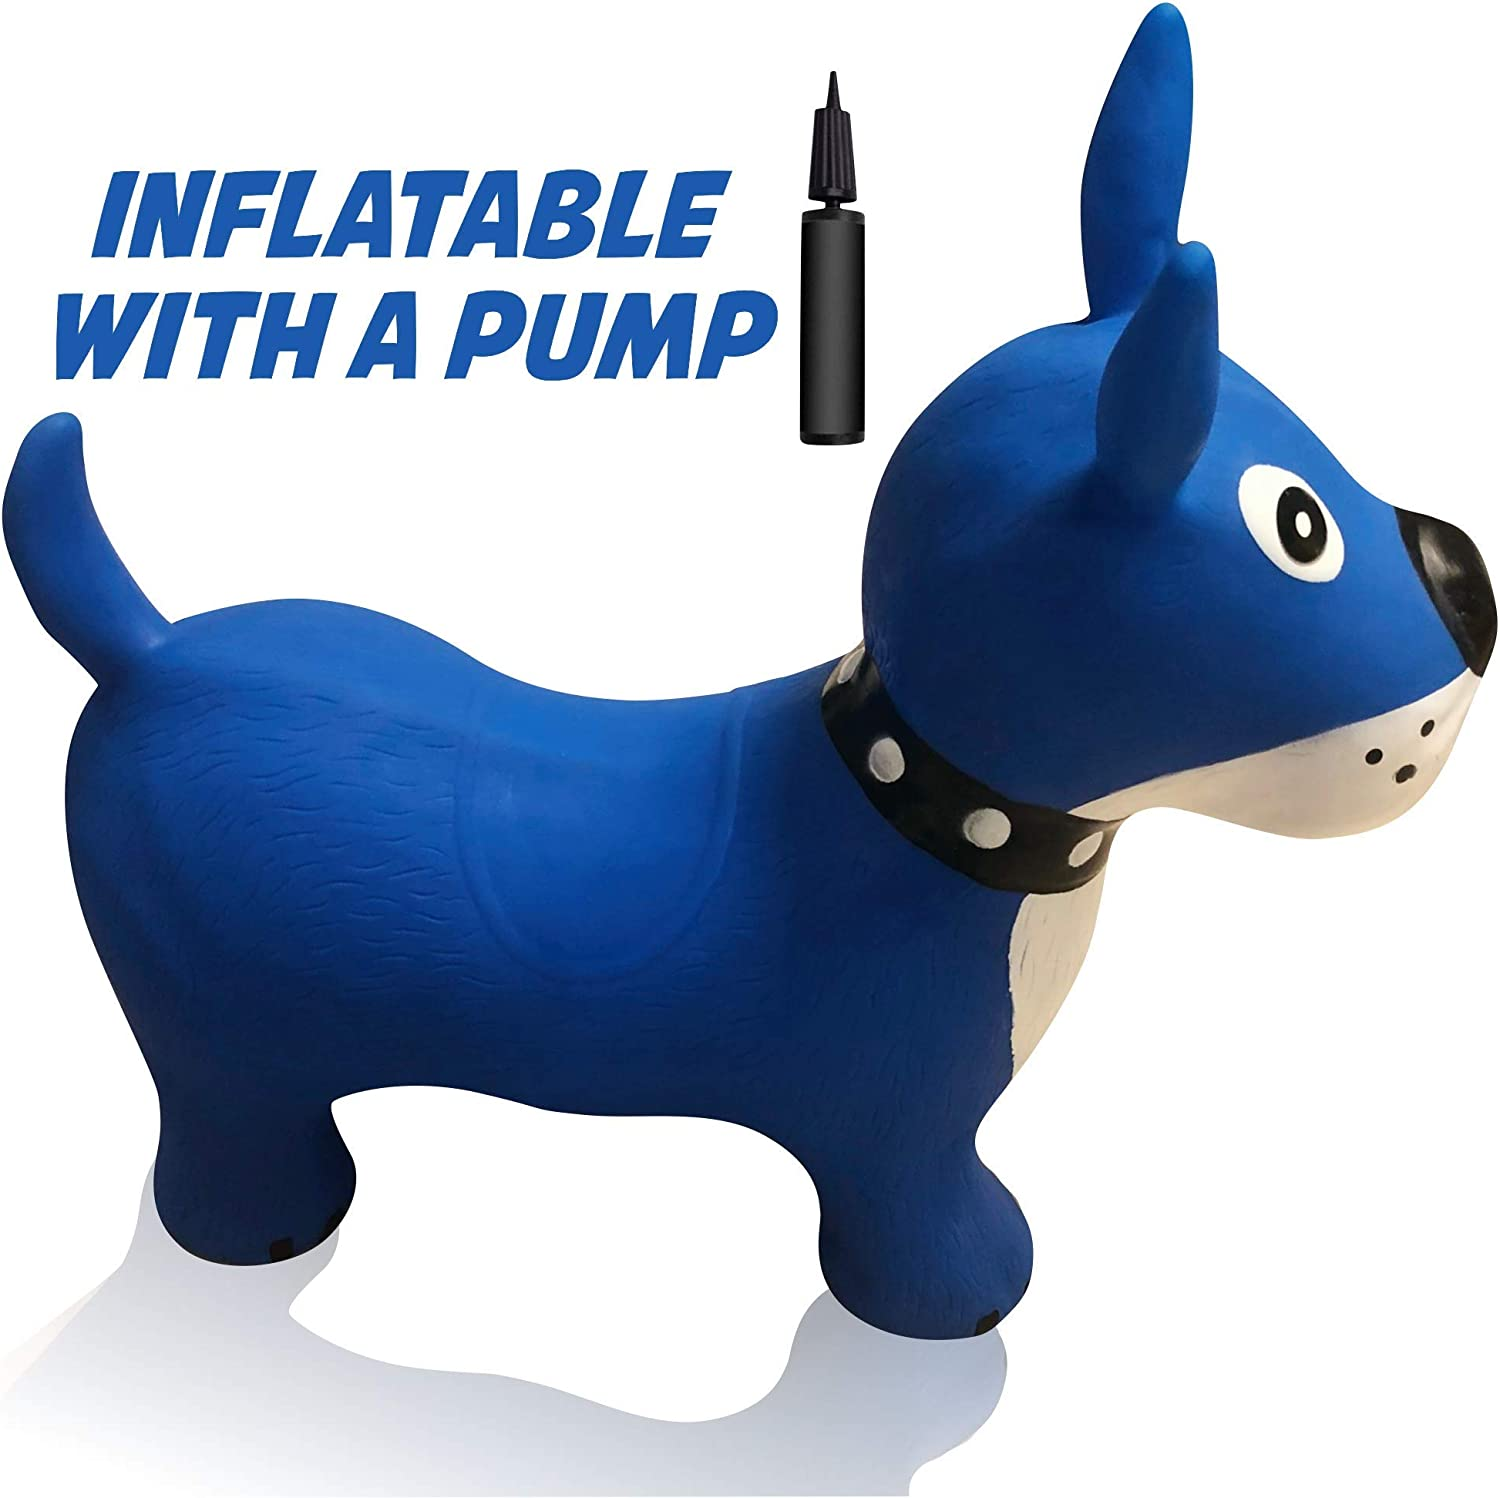 Hoovy Inflatable Bouncy Horse with Pump | Bouncing White Unicorn Ride on Toy for Kids | Unlimited Animal Riding Fun & Ideal Jumping Hopper Gift for ...